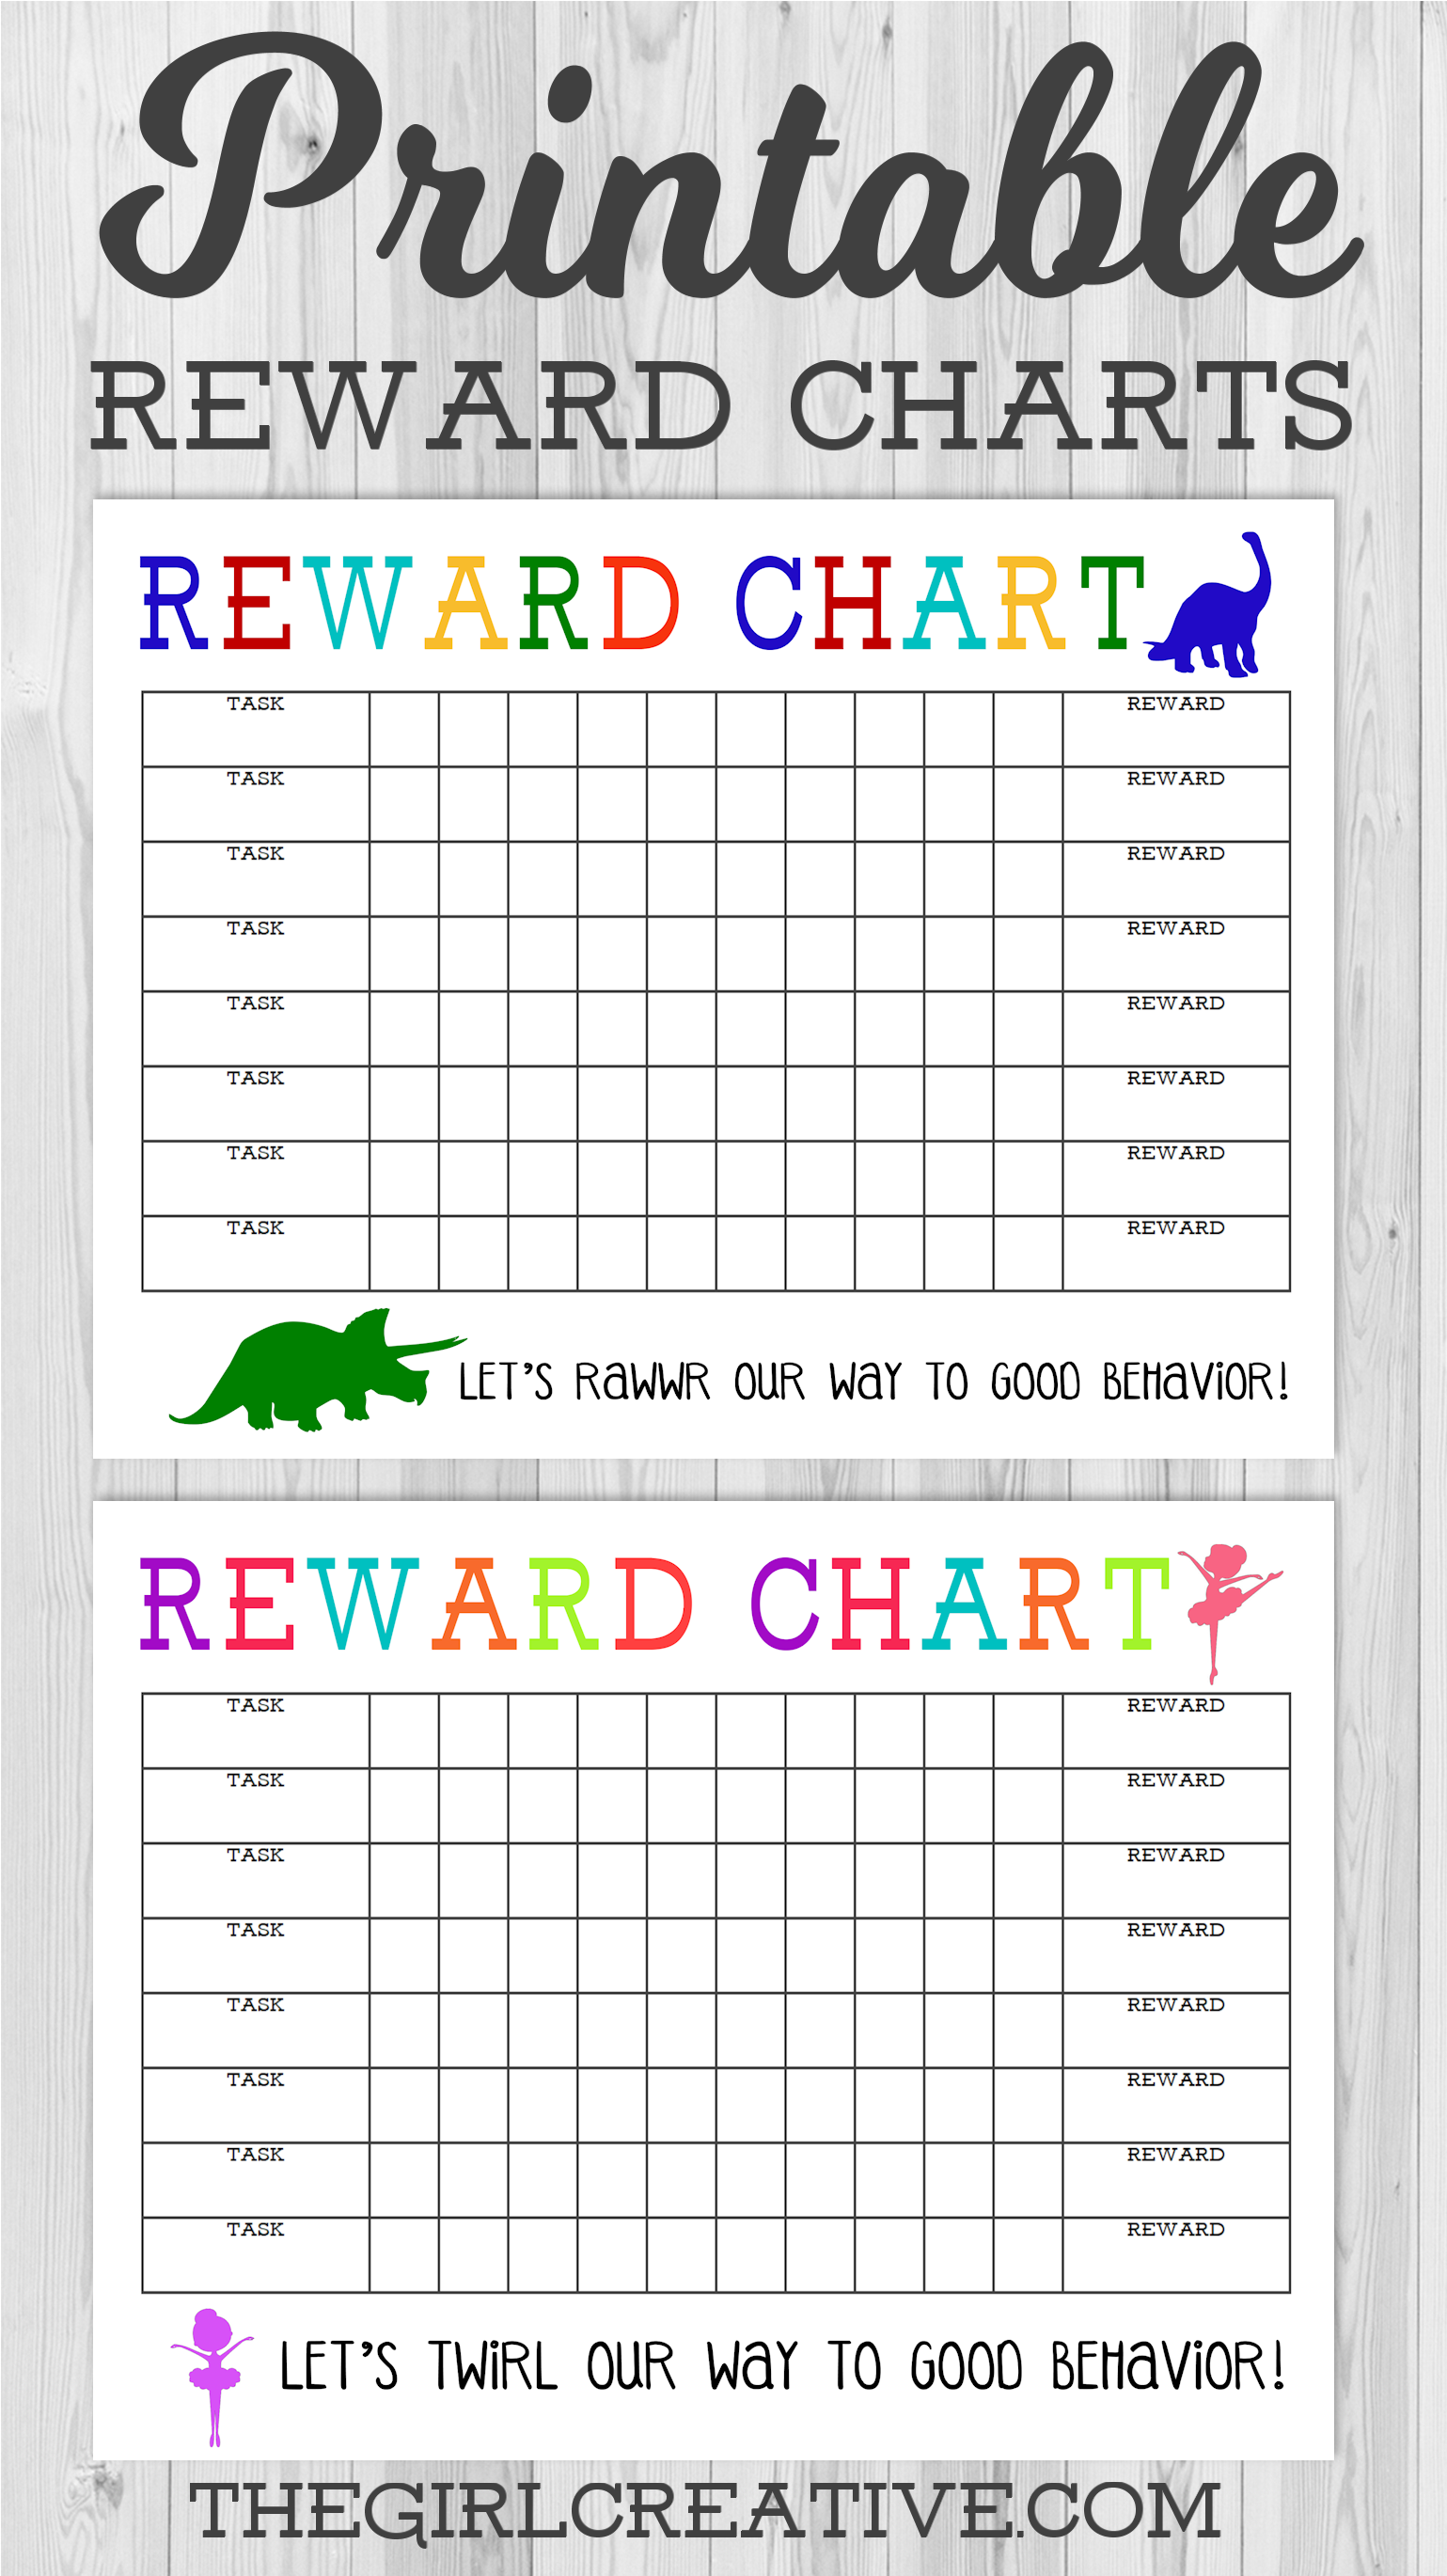 photograph about Printable Star Charts called Printable Benefit Chart Percentage Todays Craft and Do it yourself Recommendations